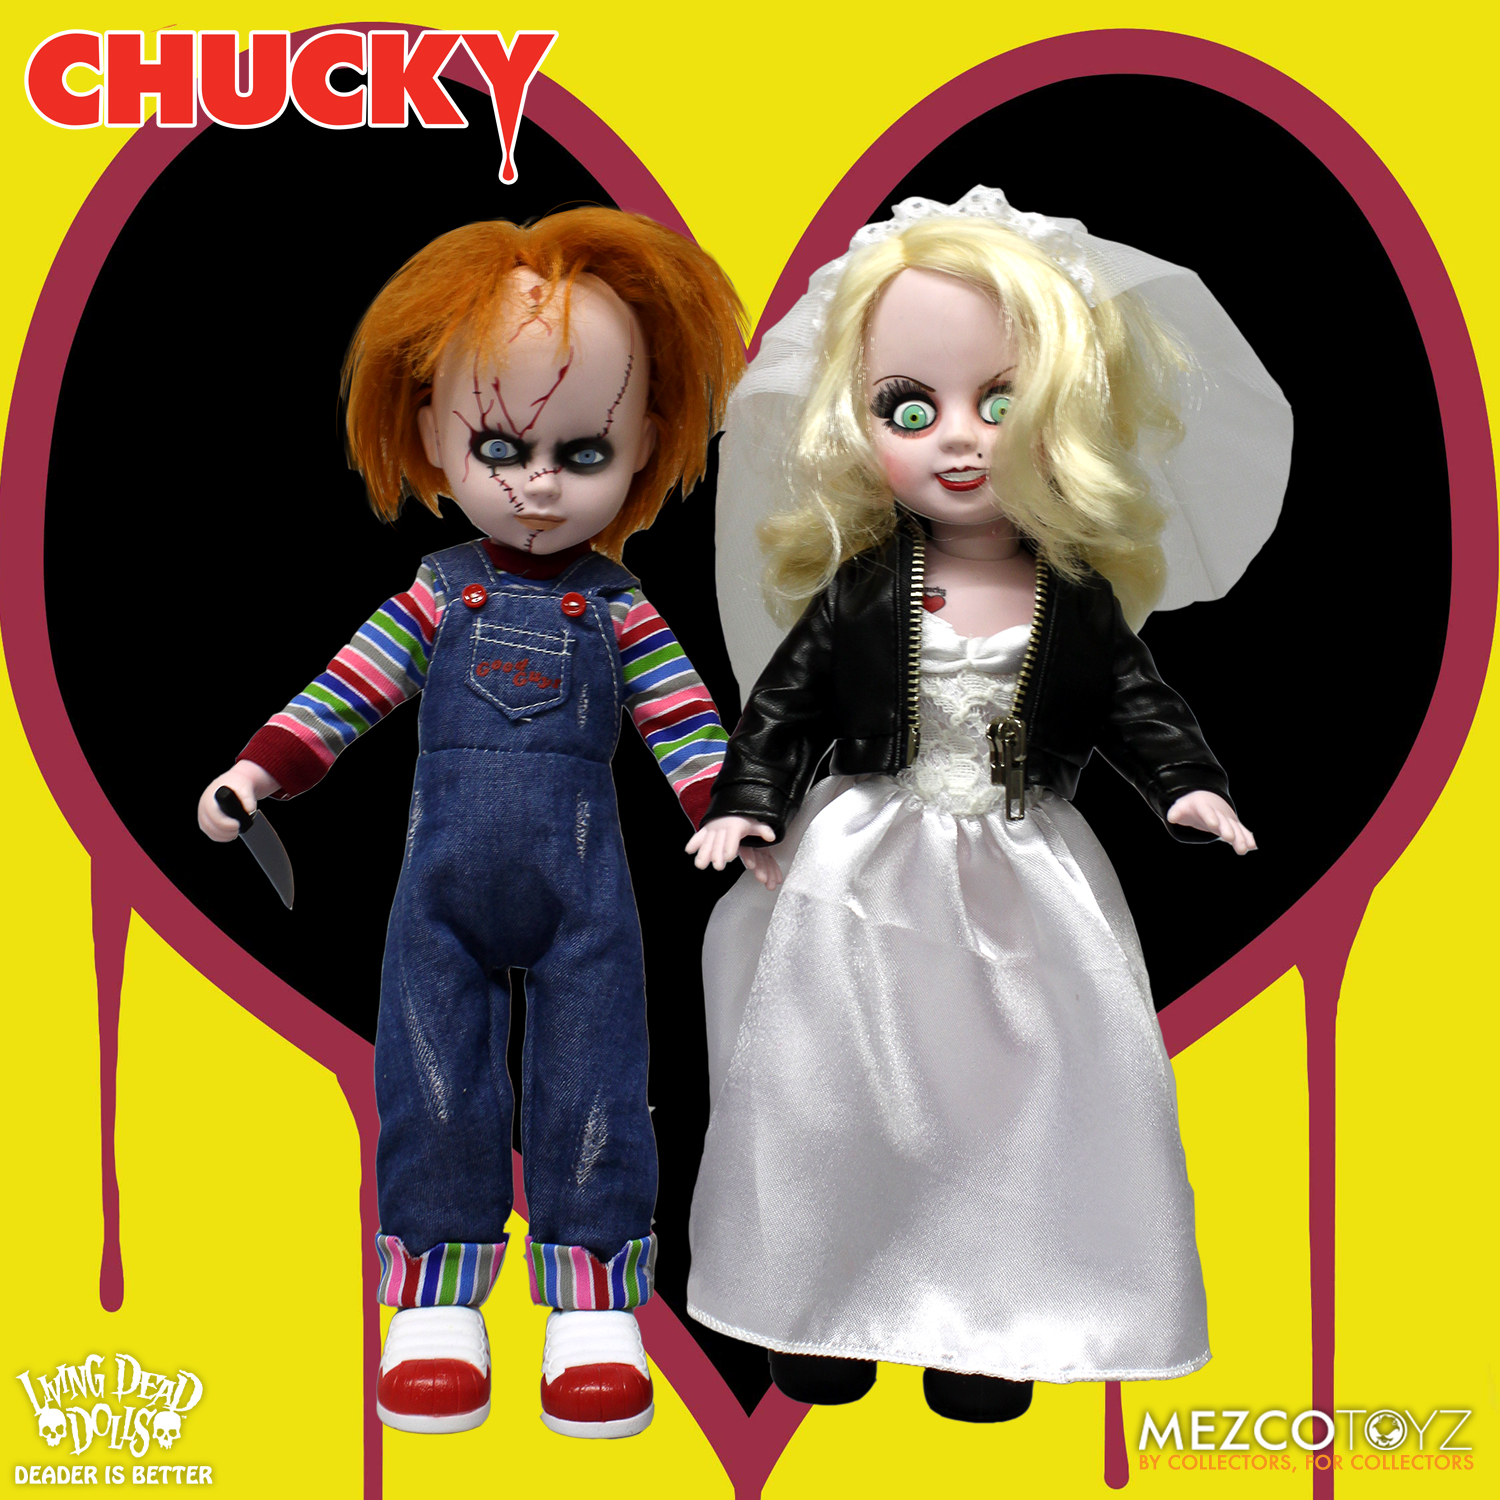 throwback thursday chucky and tiffany living dead dolls